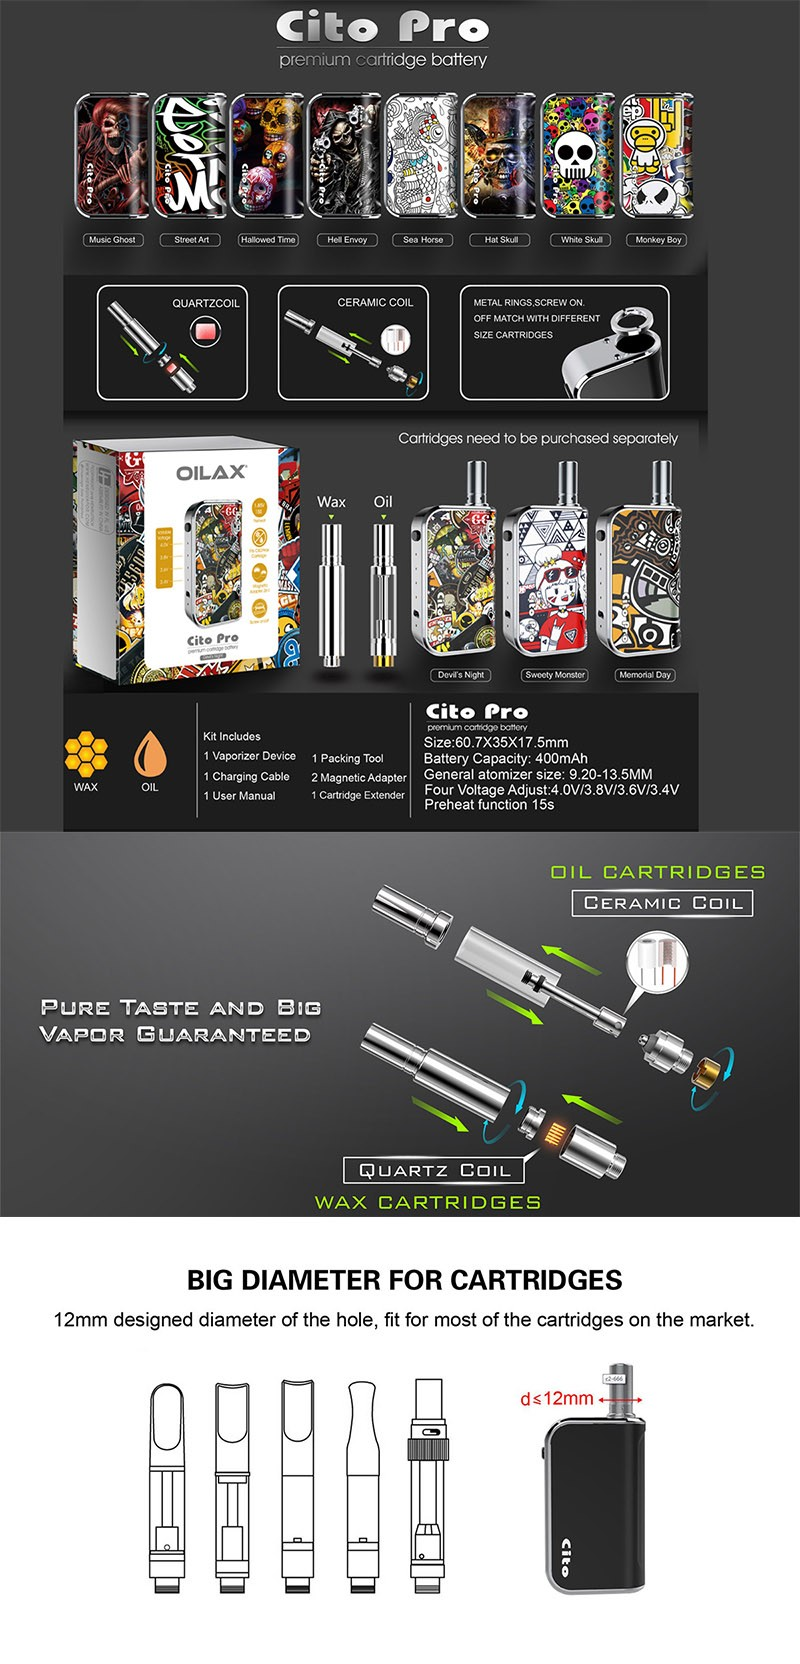 OILAX Cito C2 Pro 2-in-1 400mAh Box Mod Battery with Oil / Wax Cartridge Starter Kit